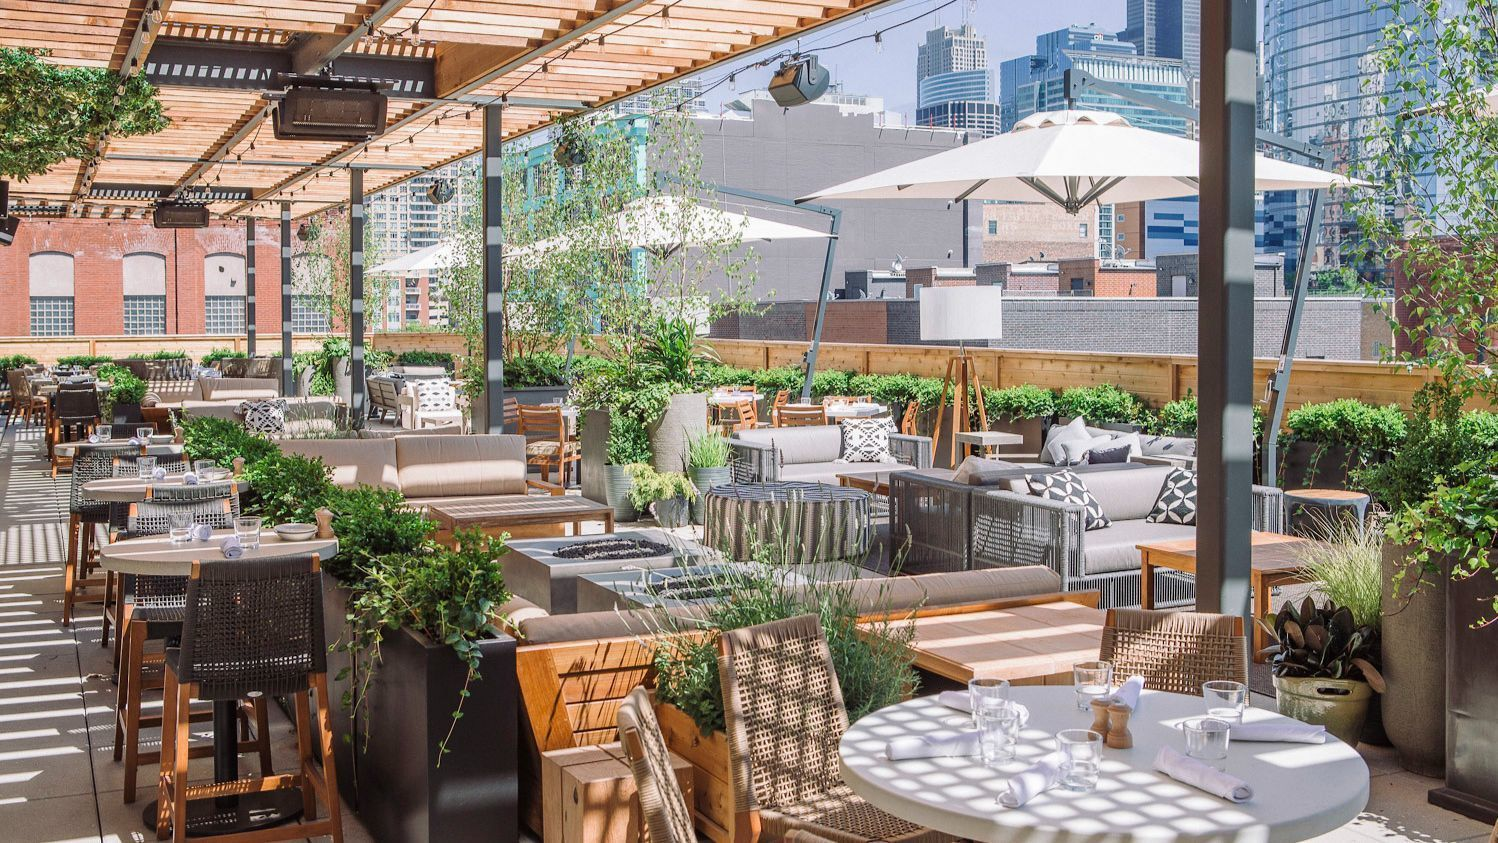 130 Plus Chicago Patios And Rooftops For Summer Eating And